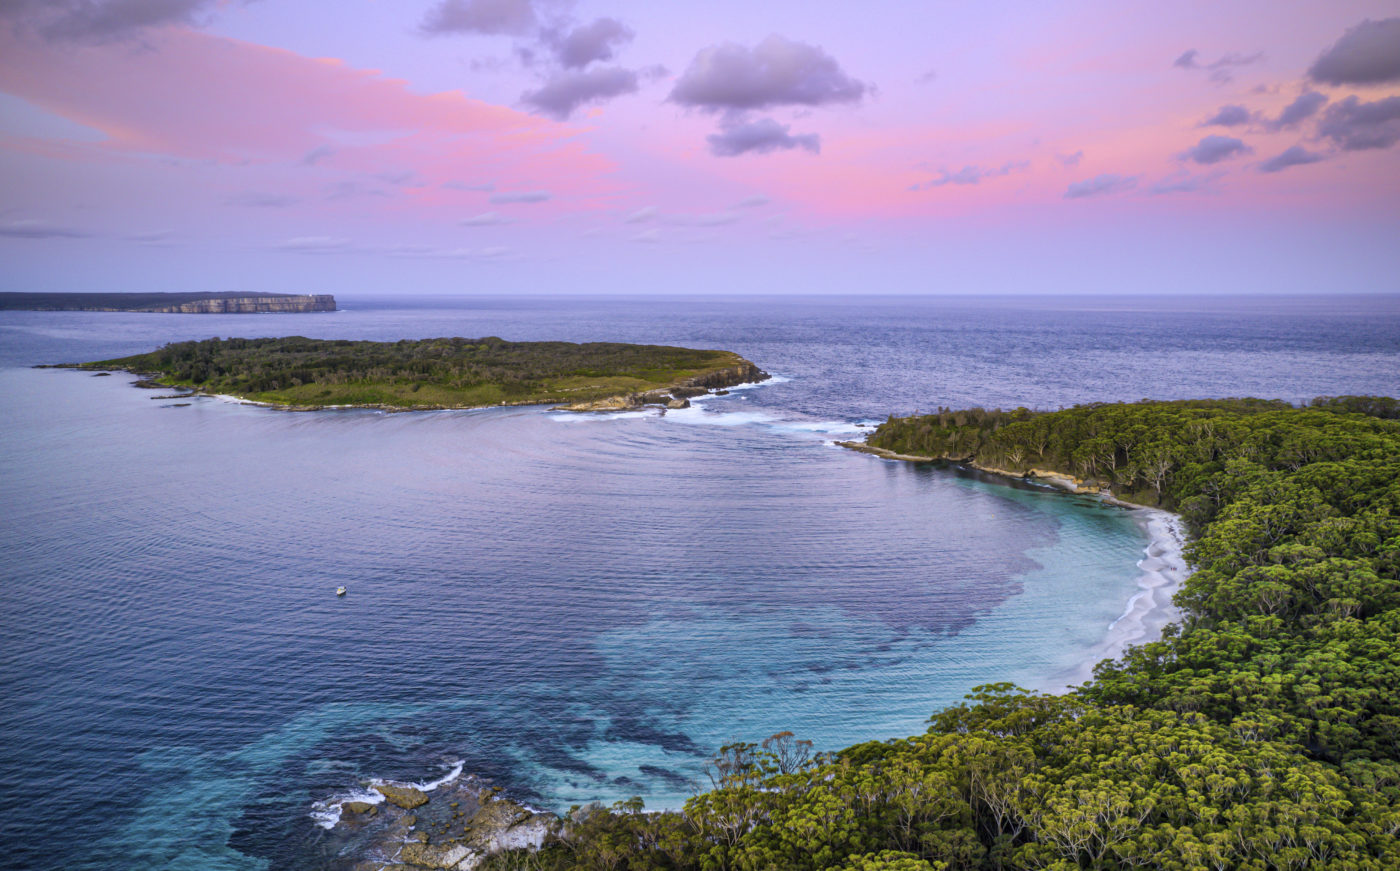 Sunset over Bowen Island and Murrays Beach in Jervis Bay. Photo by Filippo Rivetti